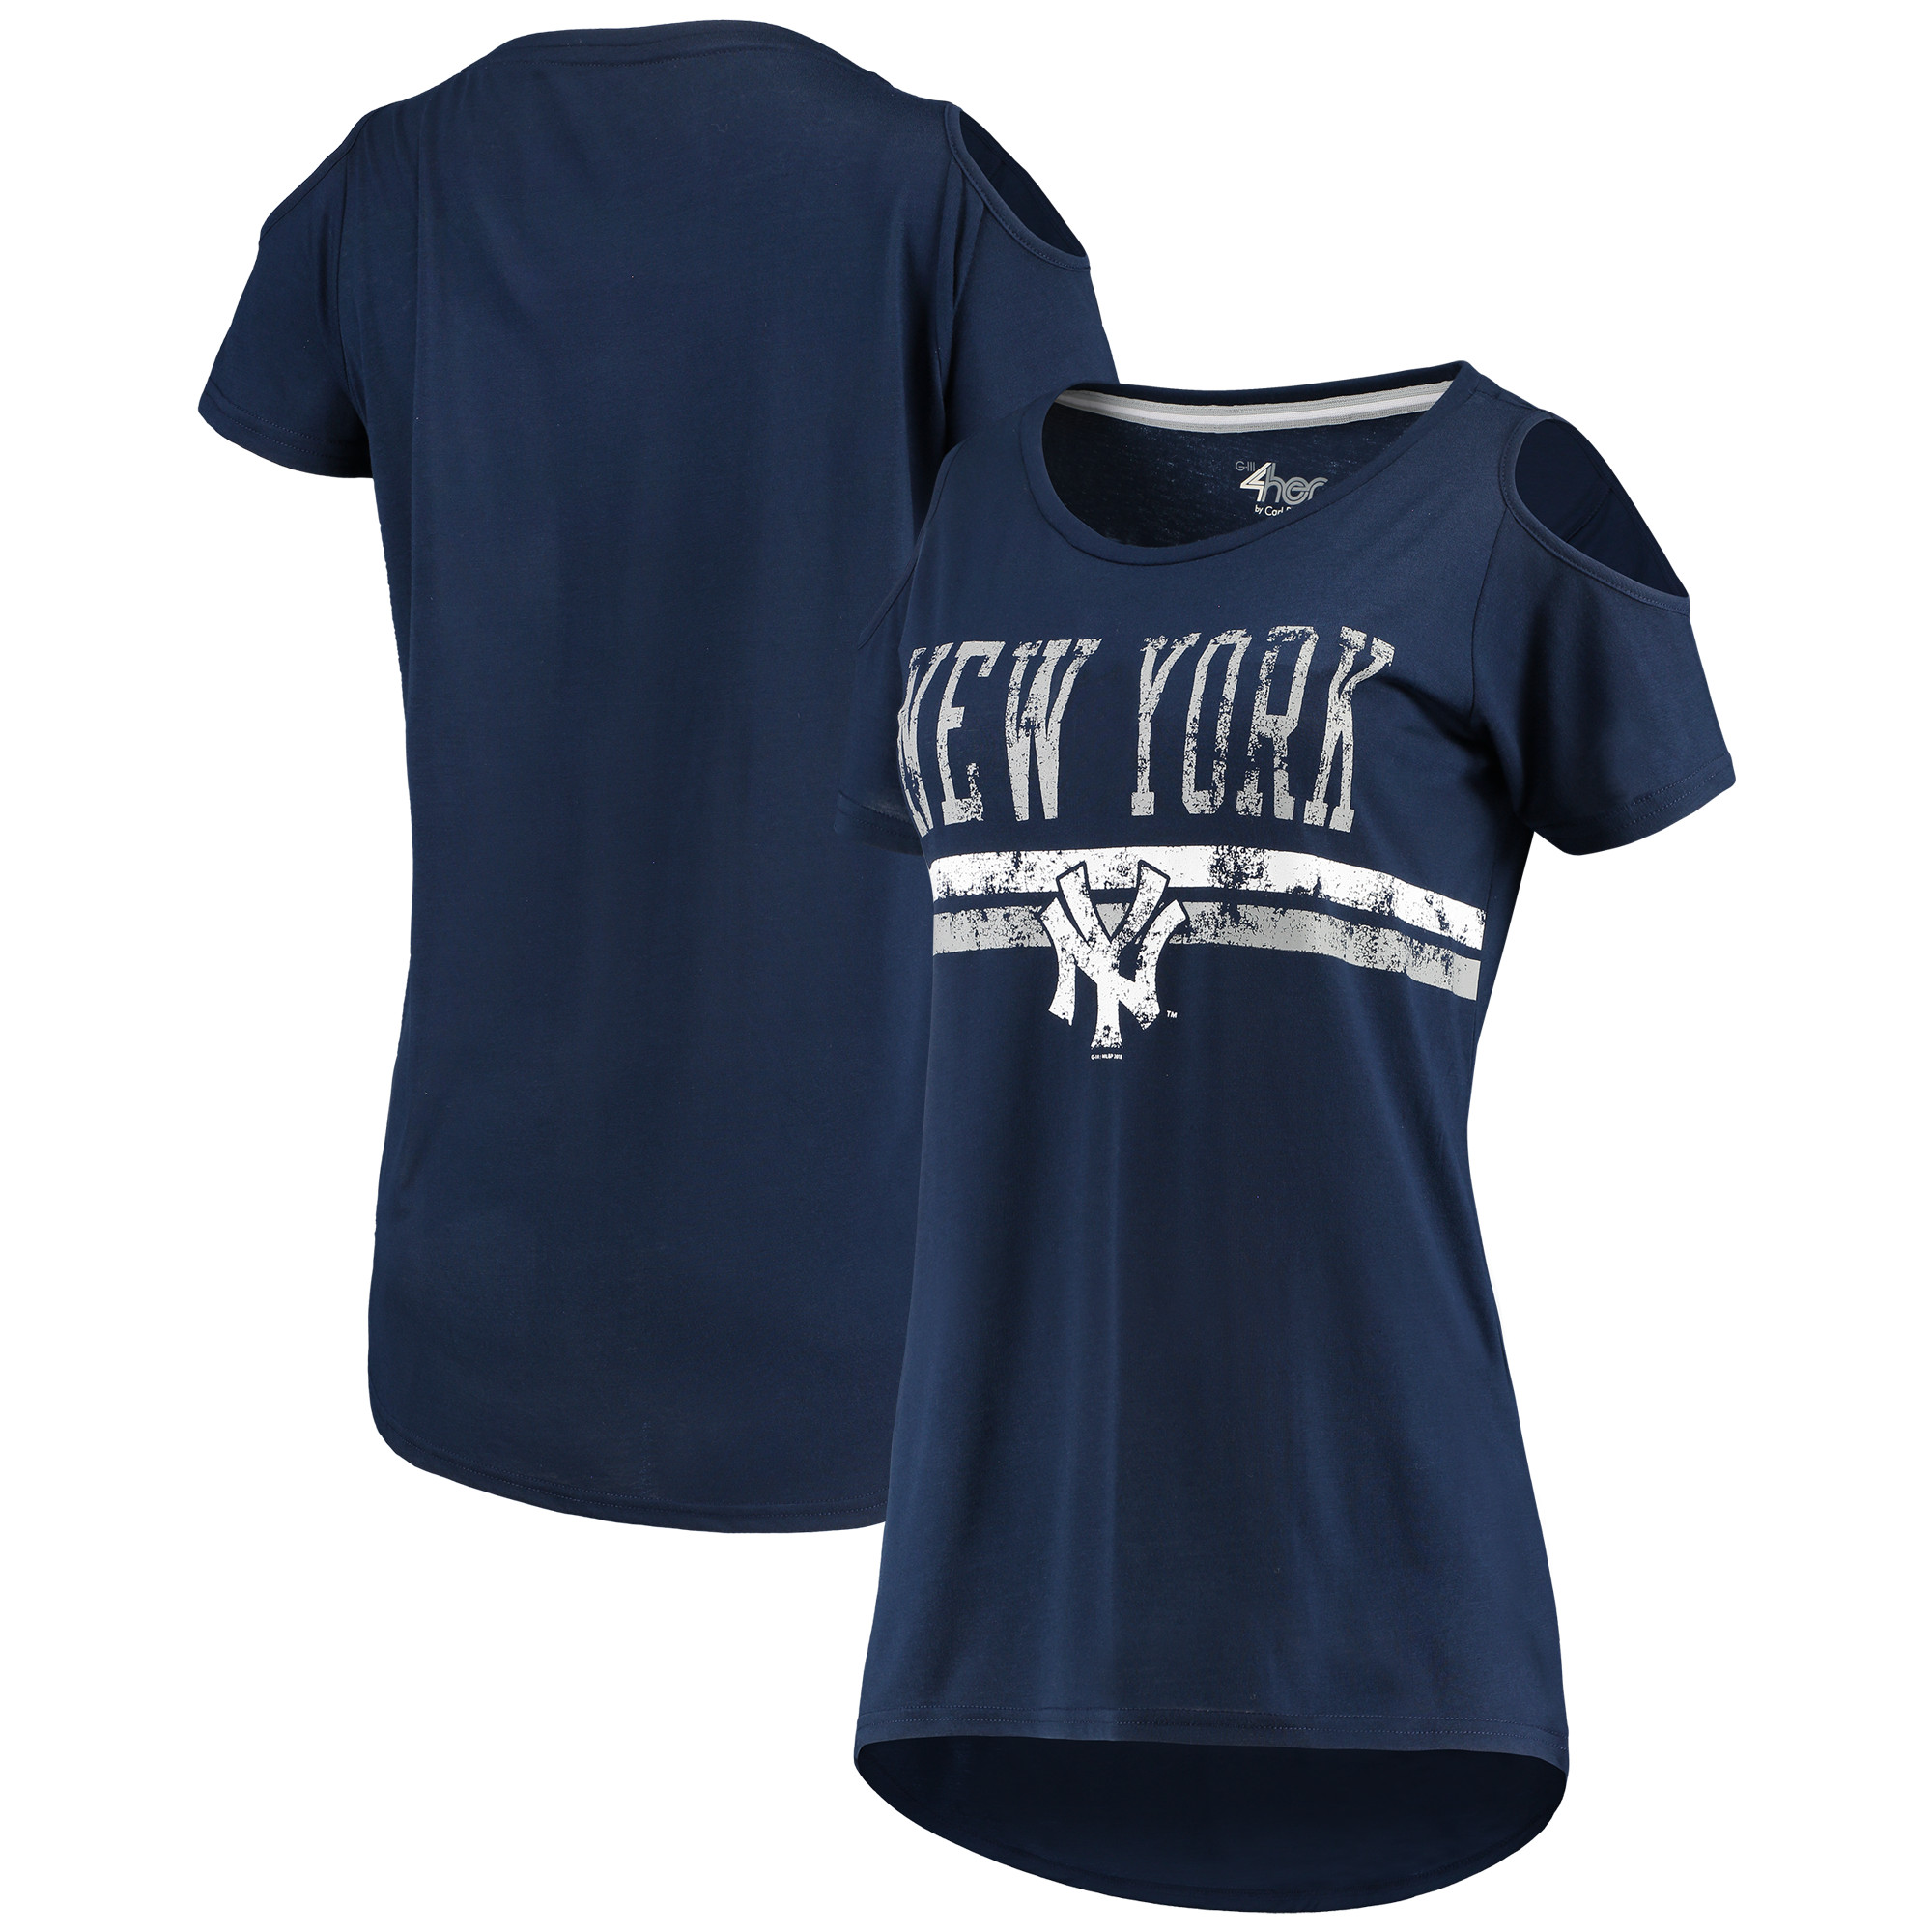 New York Yankees G-III 4Her by Carl Banks Women's Clear The Base Cold Shoulder Scoopneck T-Shirt Navy by G-III LEATHER FASHIONS INC